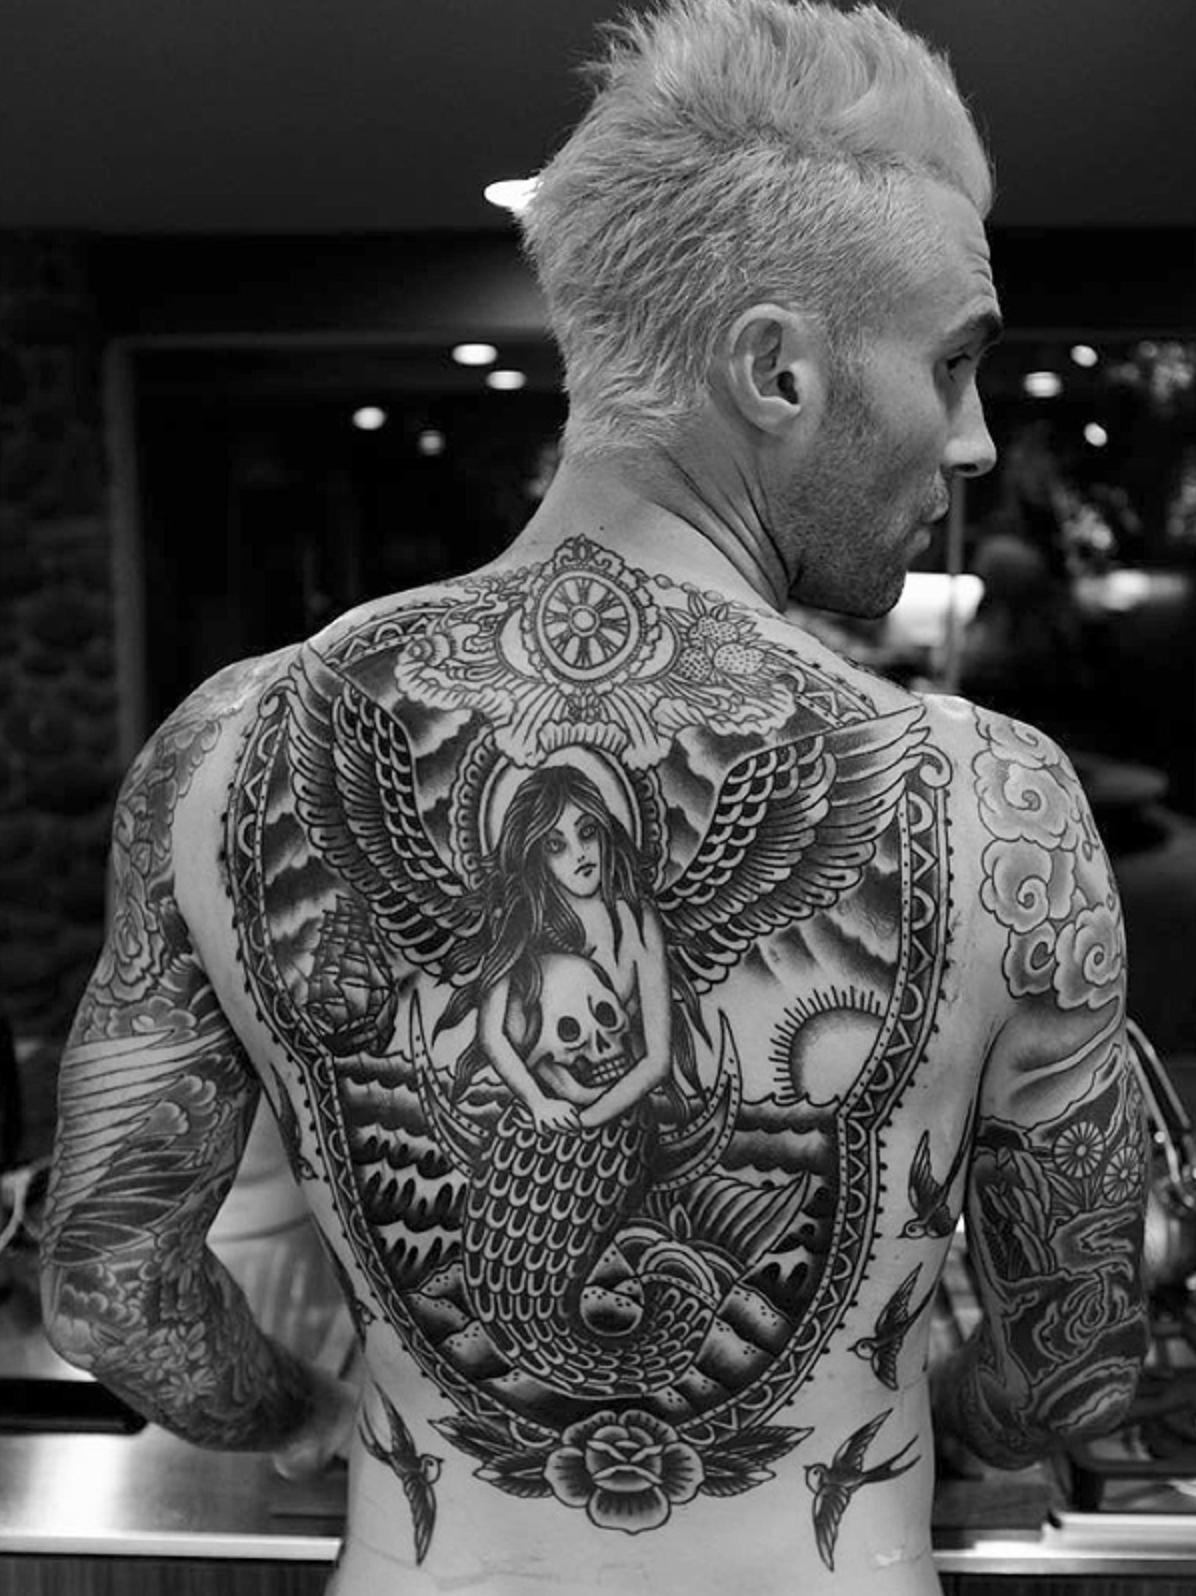 popular judge on the voice reveals giant tattoo on his